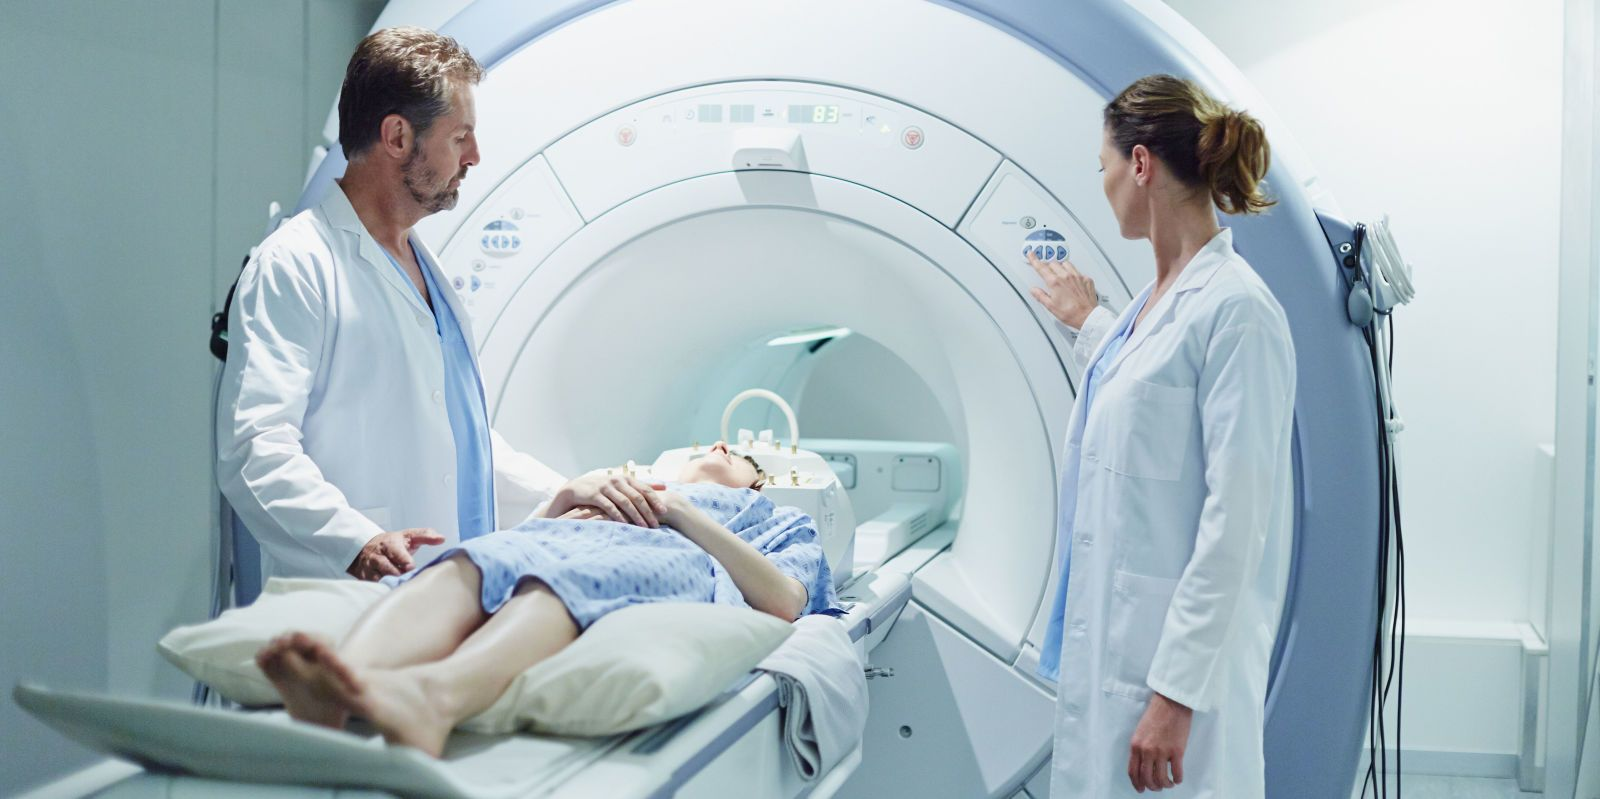 Forum on this topic: How to Endure an MRI Scan, how-to-endure-an-mri-scan/